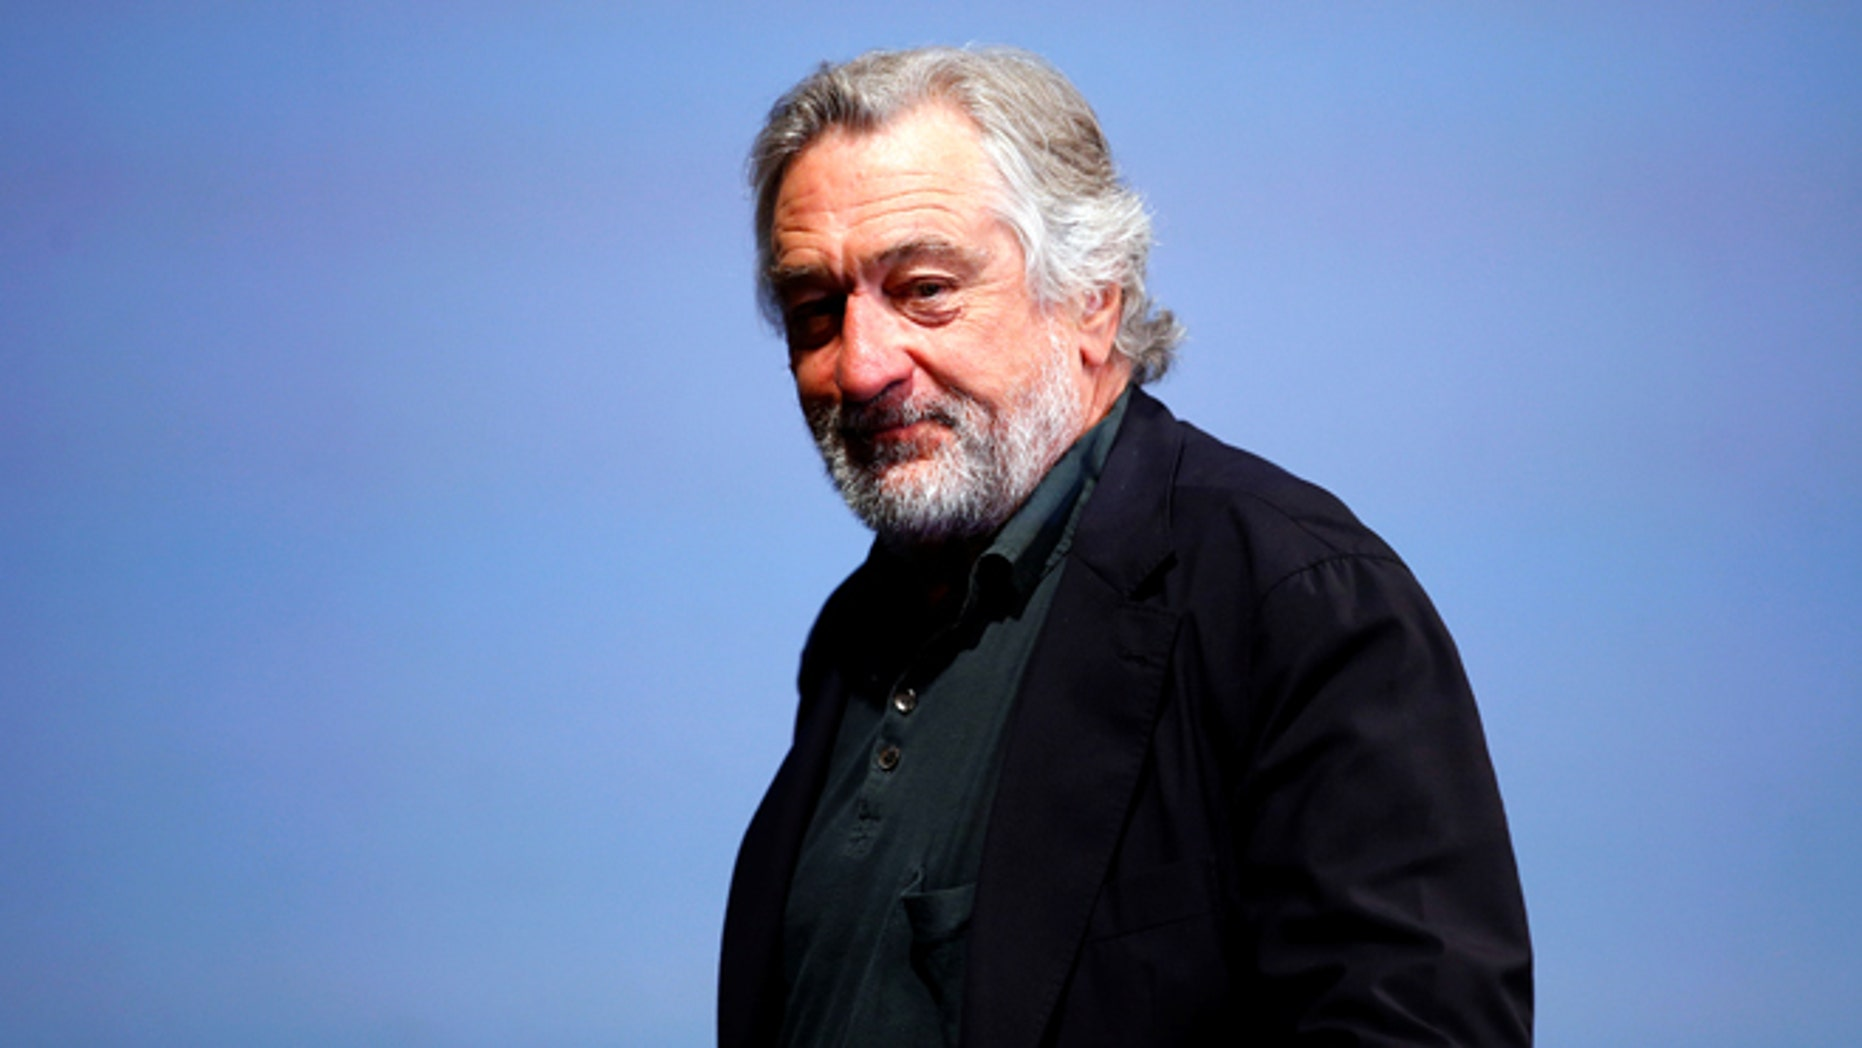 Robert De Niro discussed vaccine safety while being interviewed.